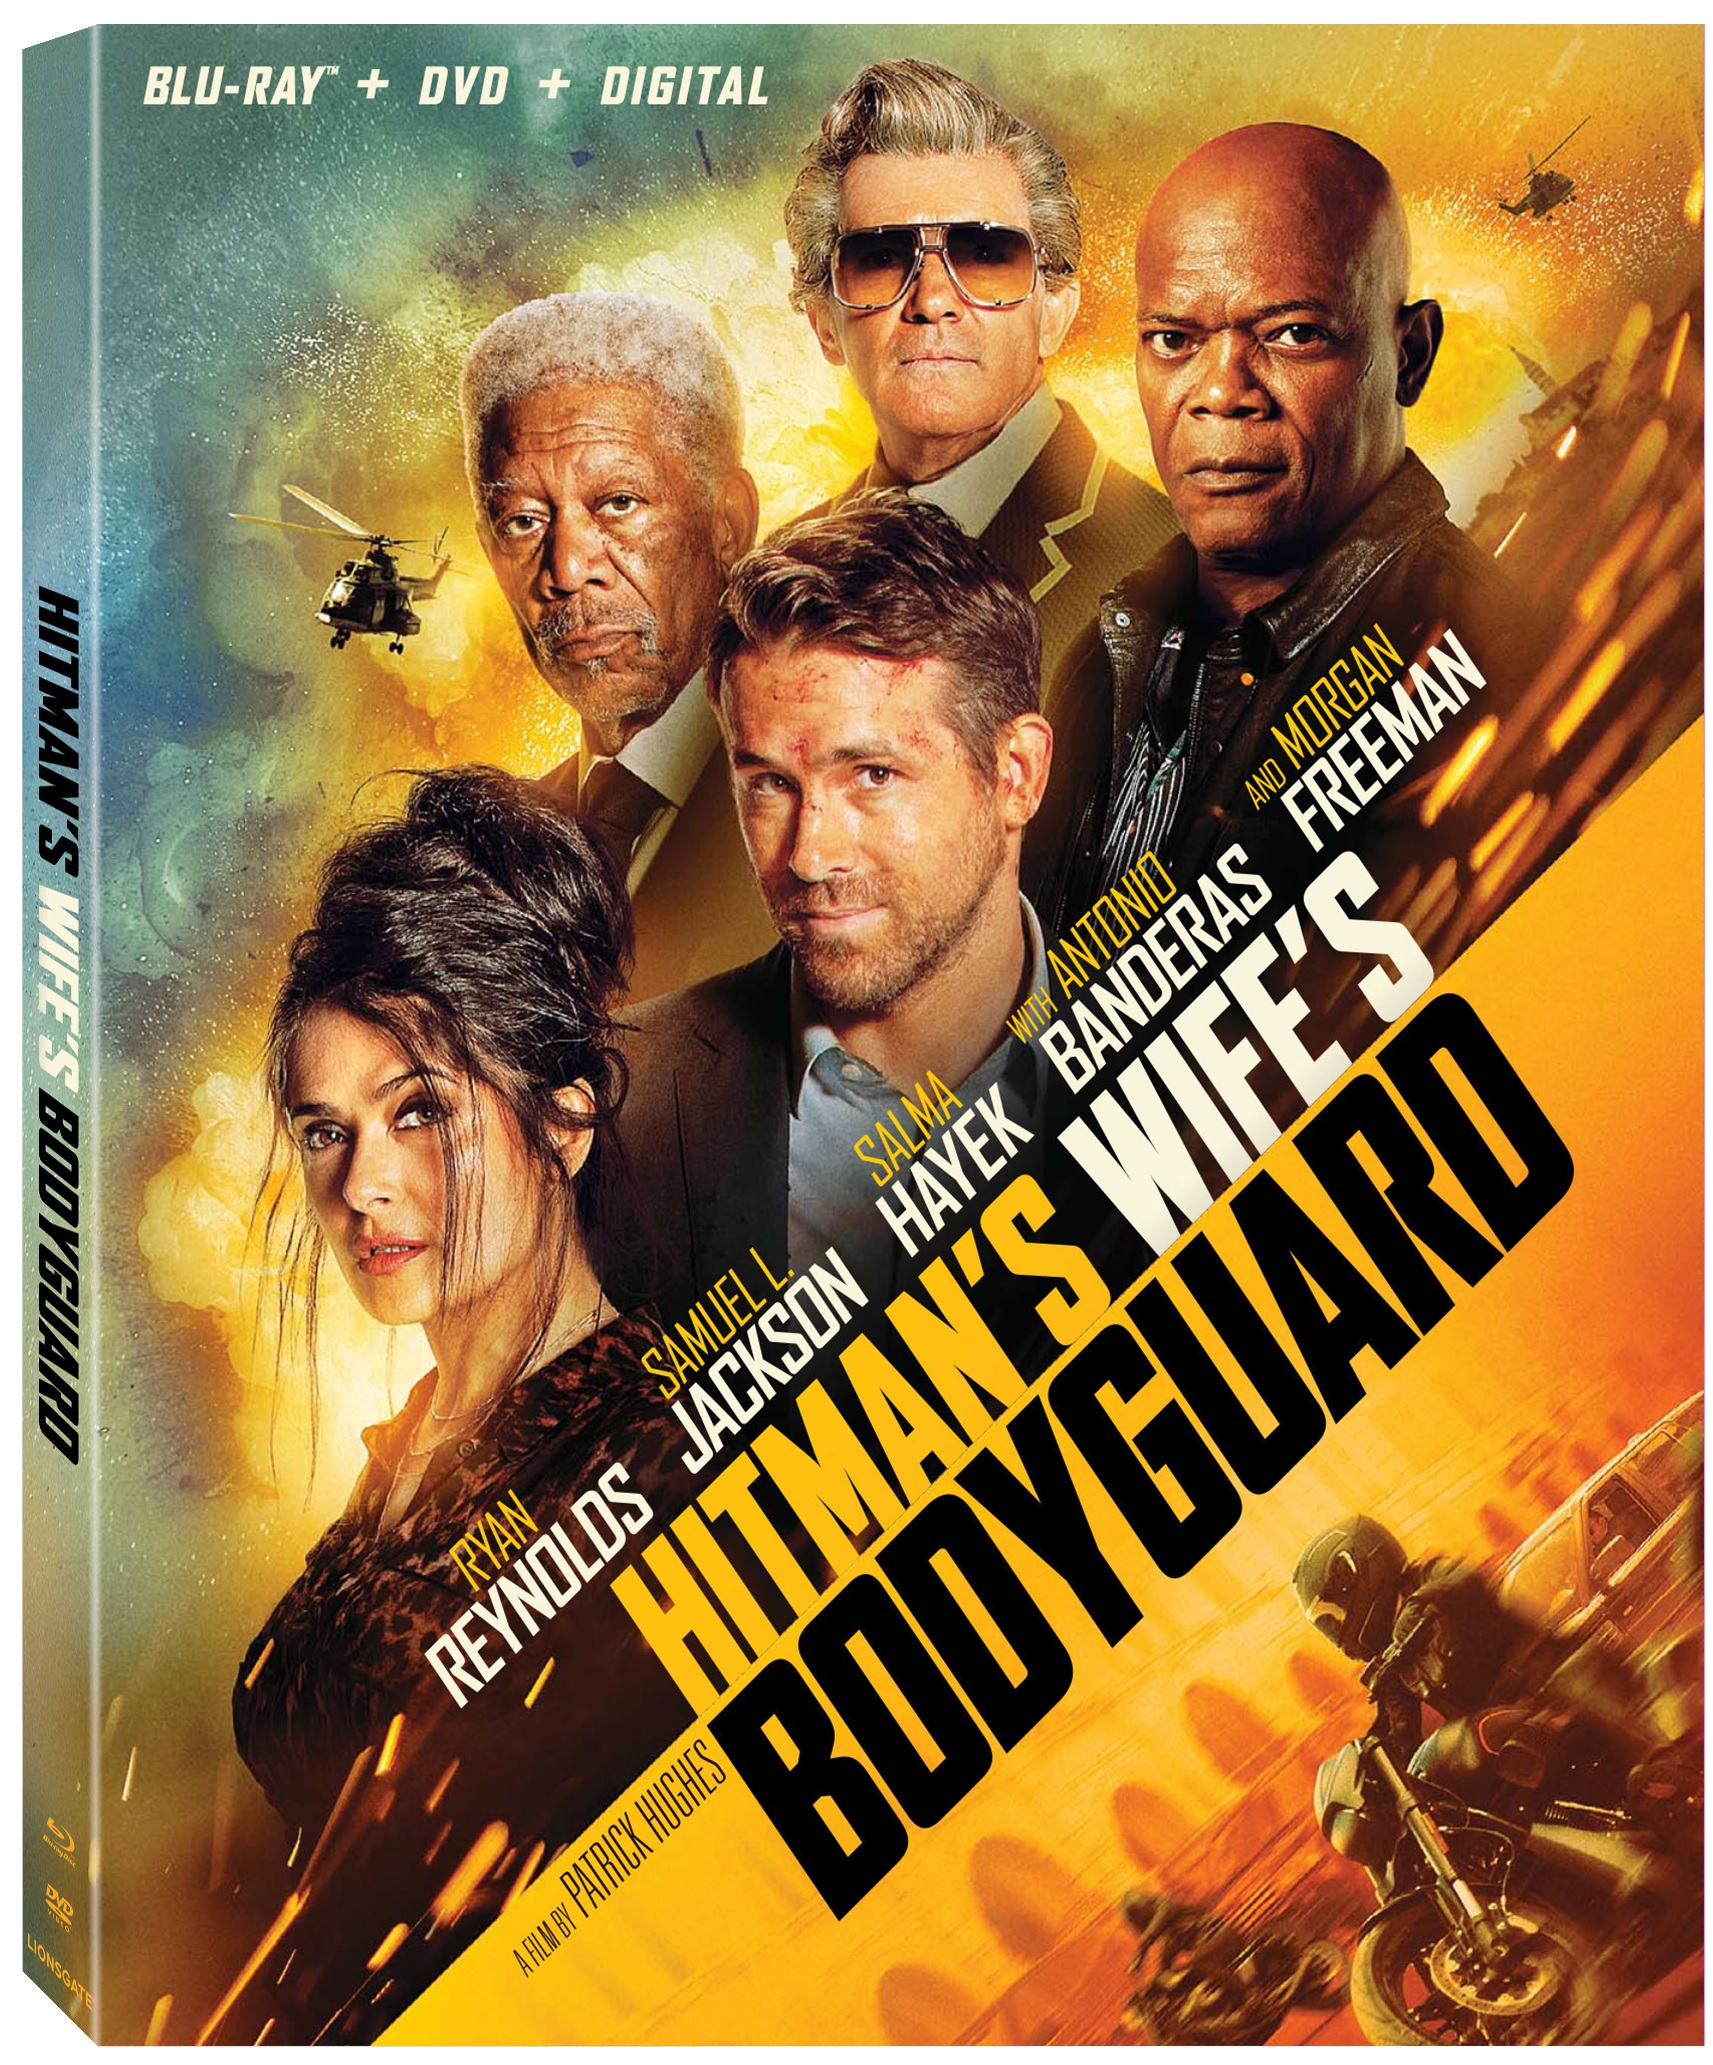 THE HITMAN'S WIFE'S BODYGUARD Blu-ray Review